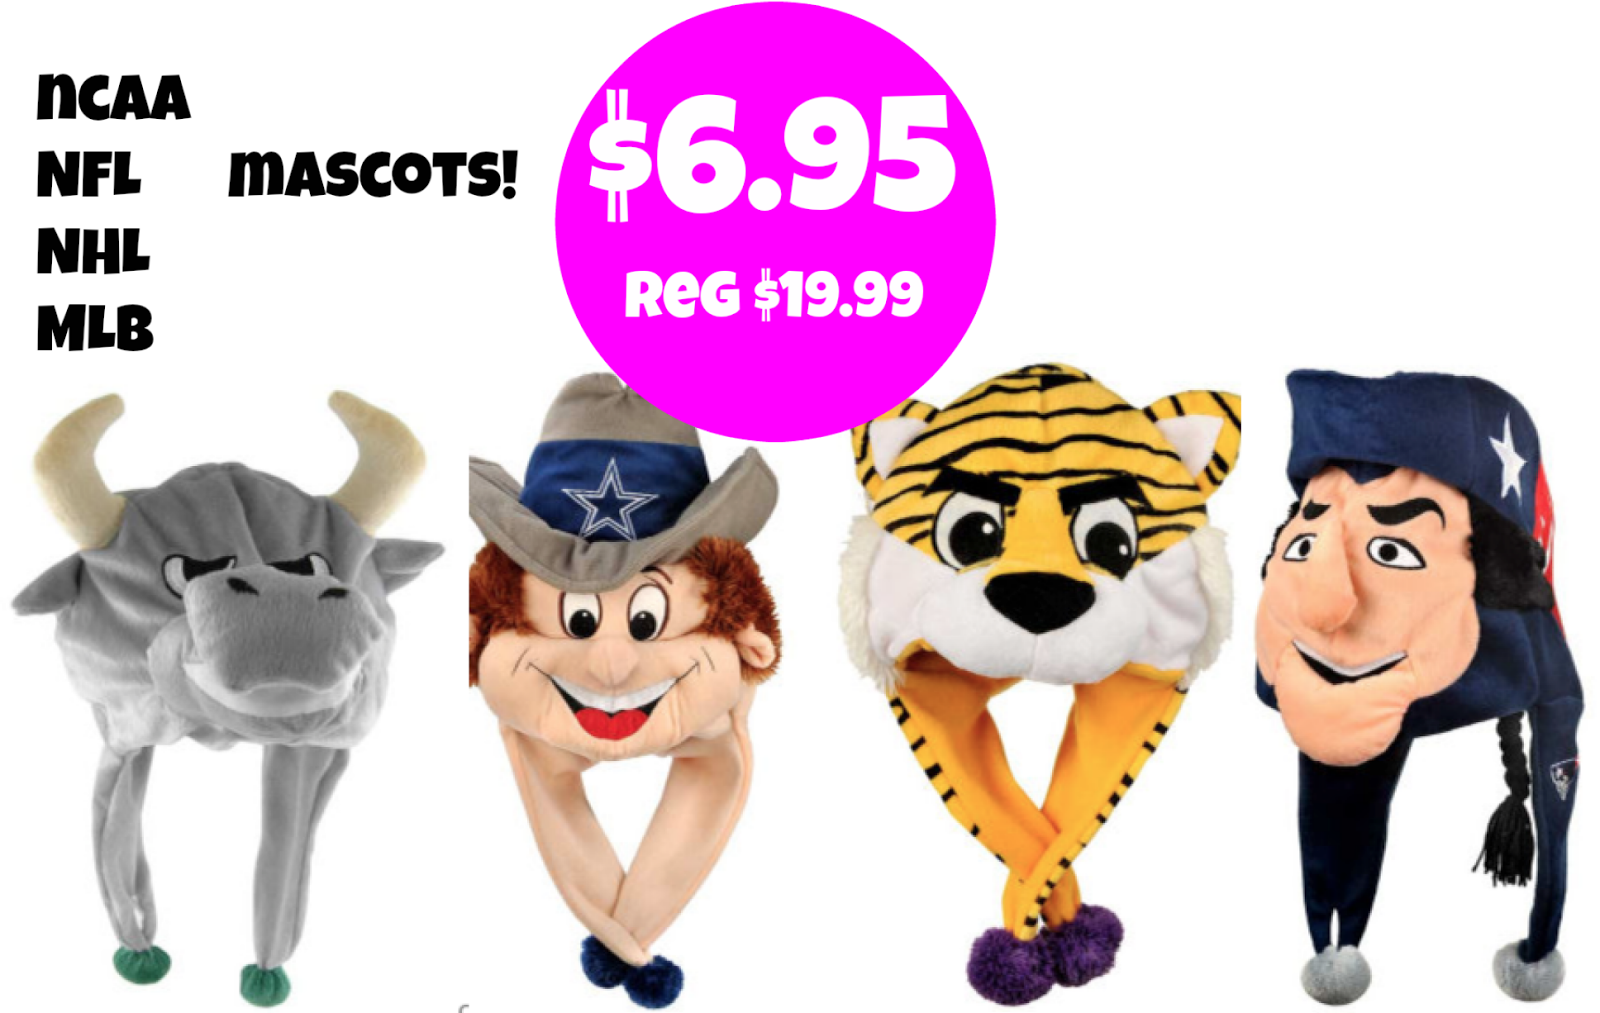 http://www.thebinderladies.com/2015/02/lids-sports-plush-collectibles-mascot.html#.VOTZbELduyM